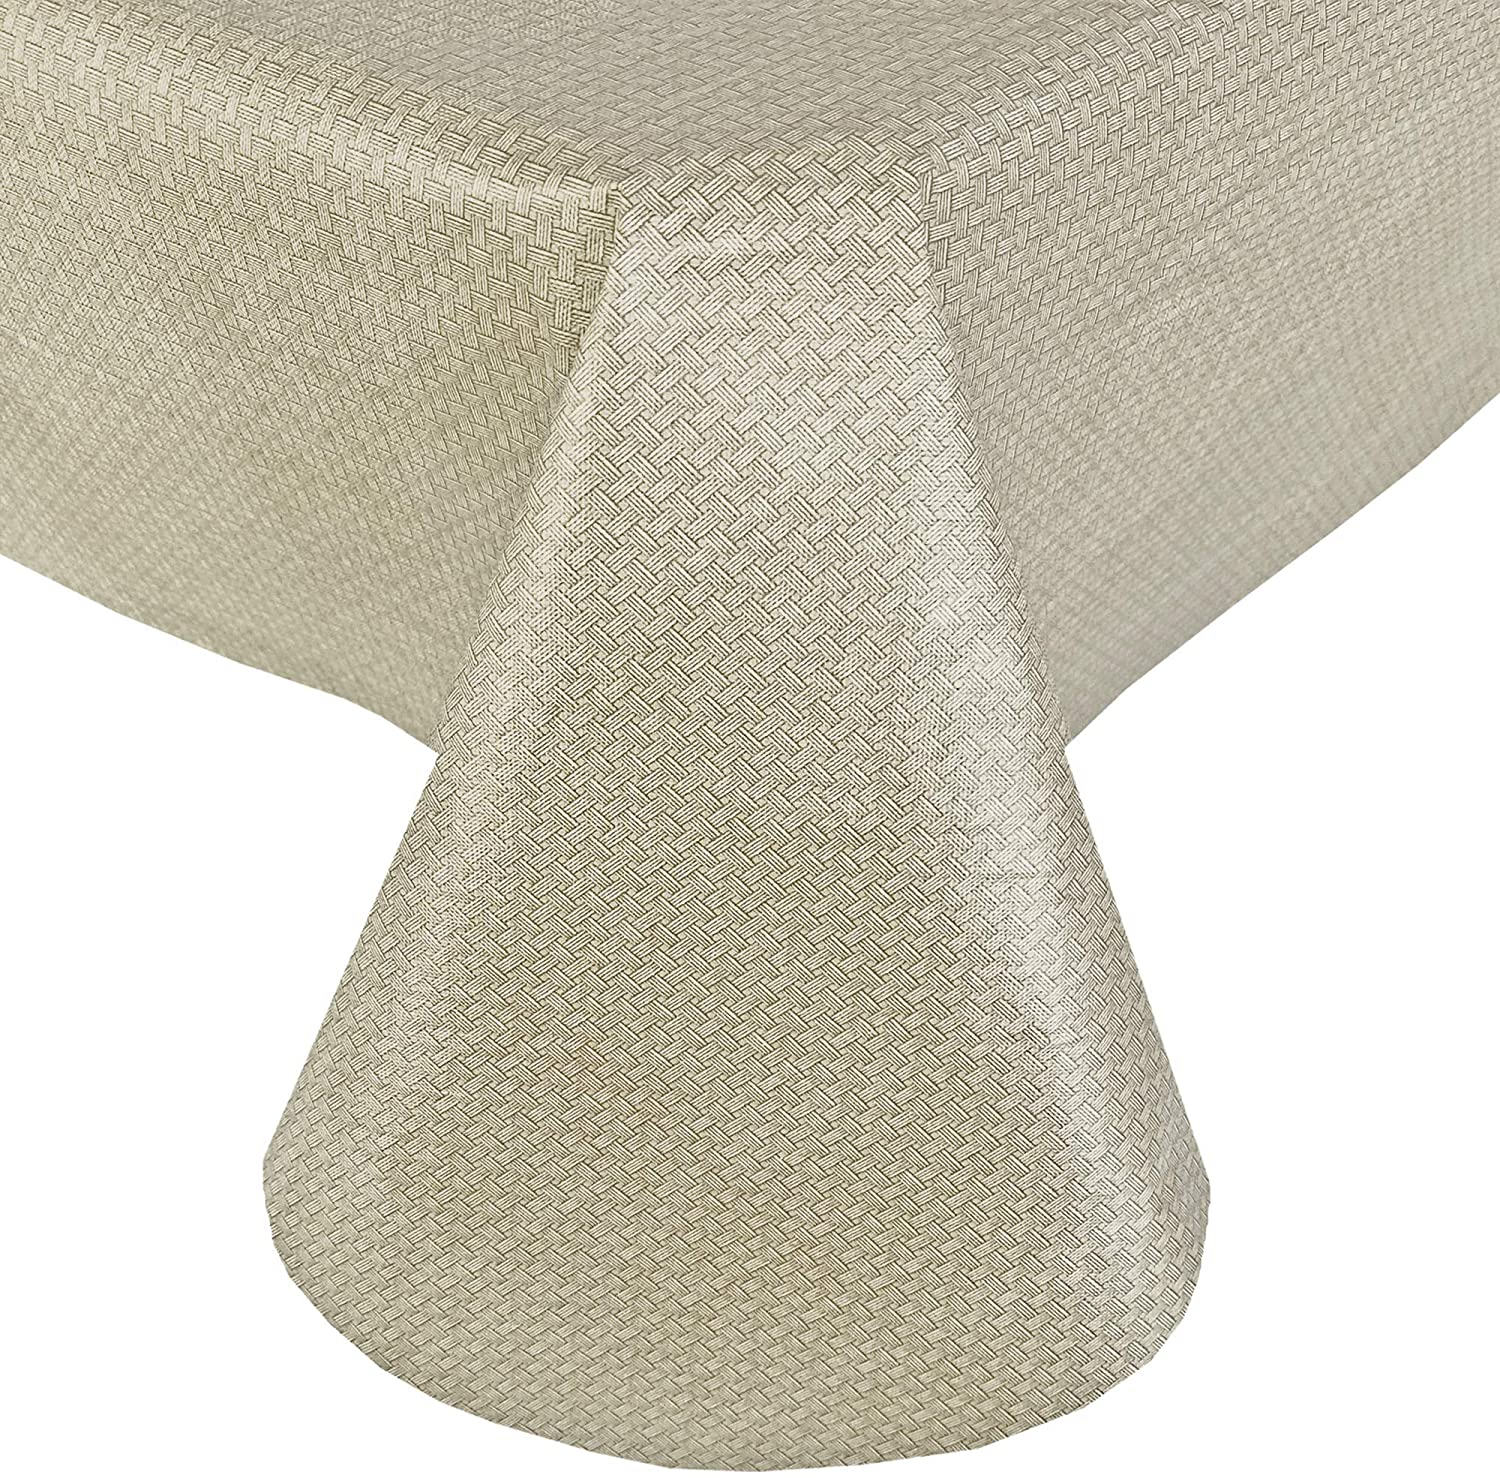 Newbridge Basketweave Solid Color Vinyl Flannel Backed Tablecloth, Basket Weave Textured Look Indoor/Outdoor Waterproof Tablecloth, Patio Kitchen Dining, 60 Inch x 120 Inch Oblong/Rectangle, Natural